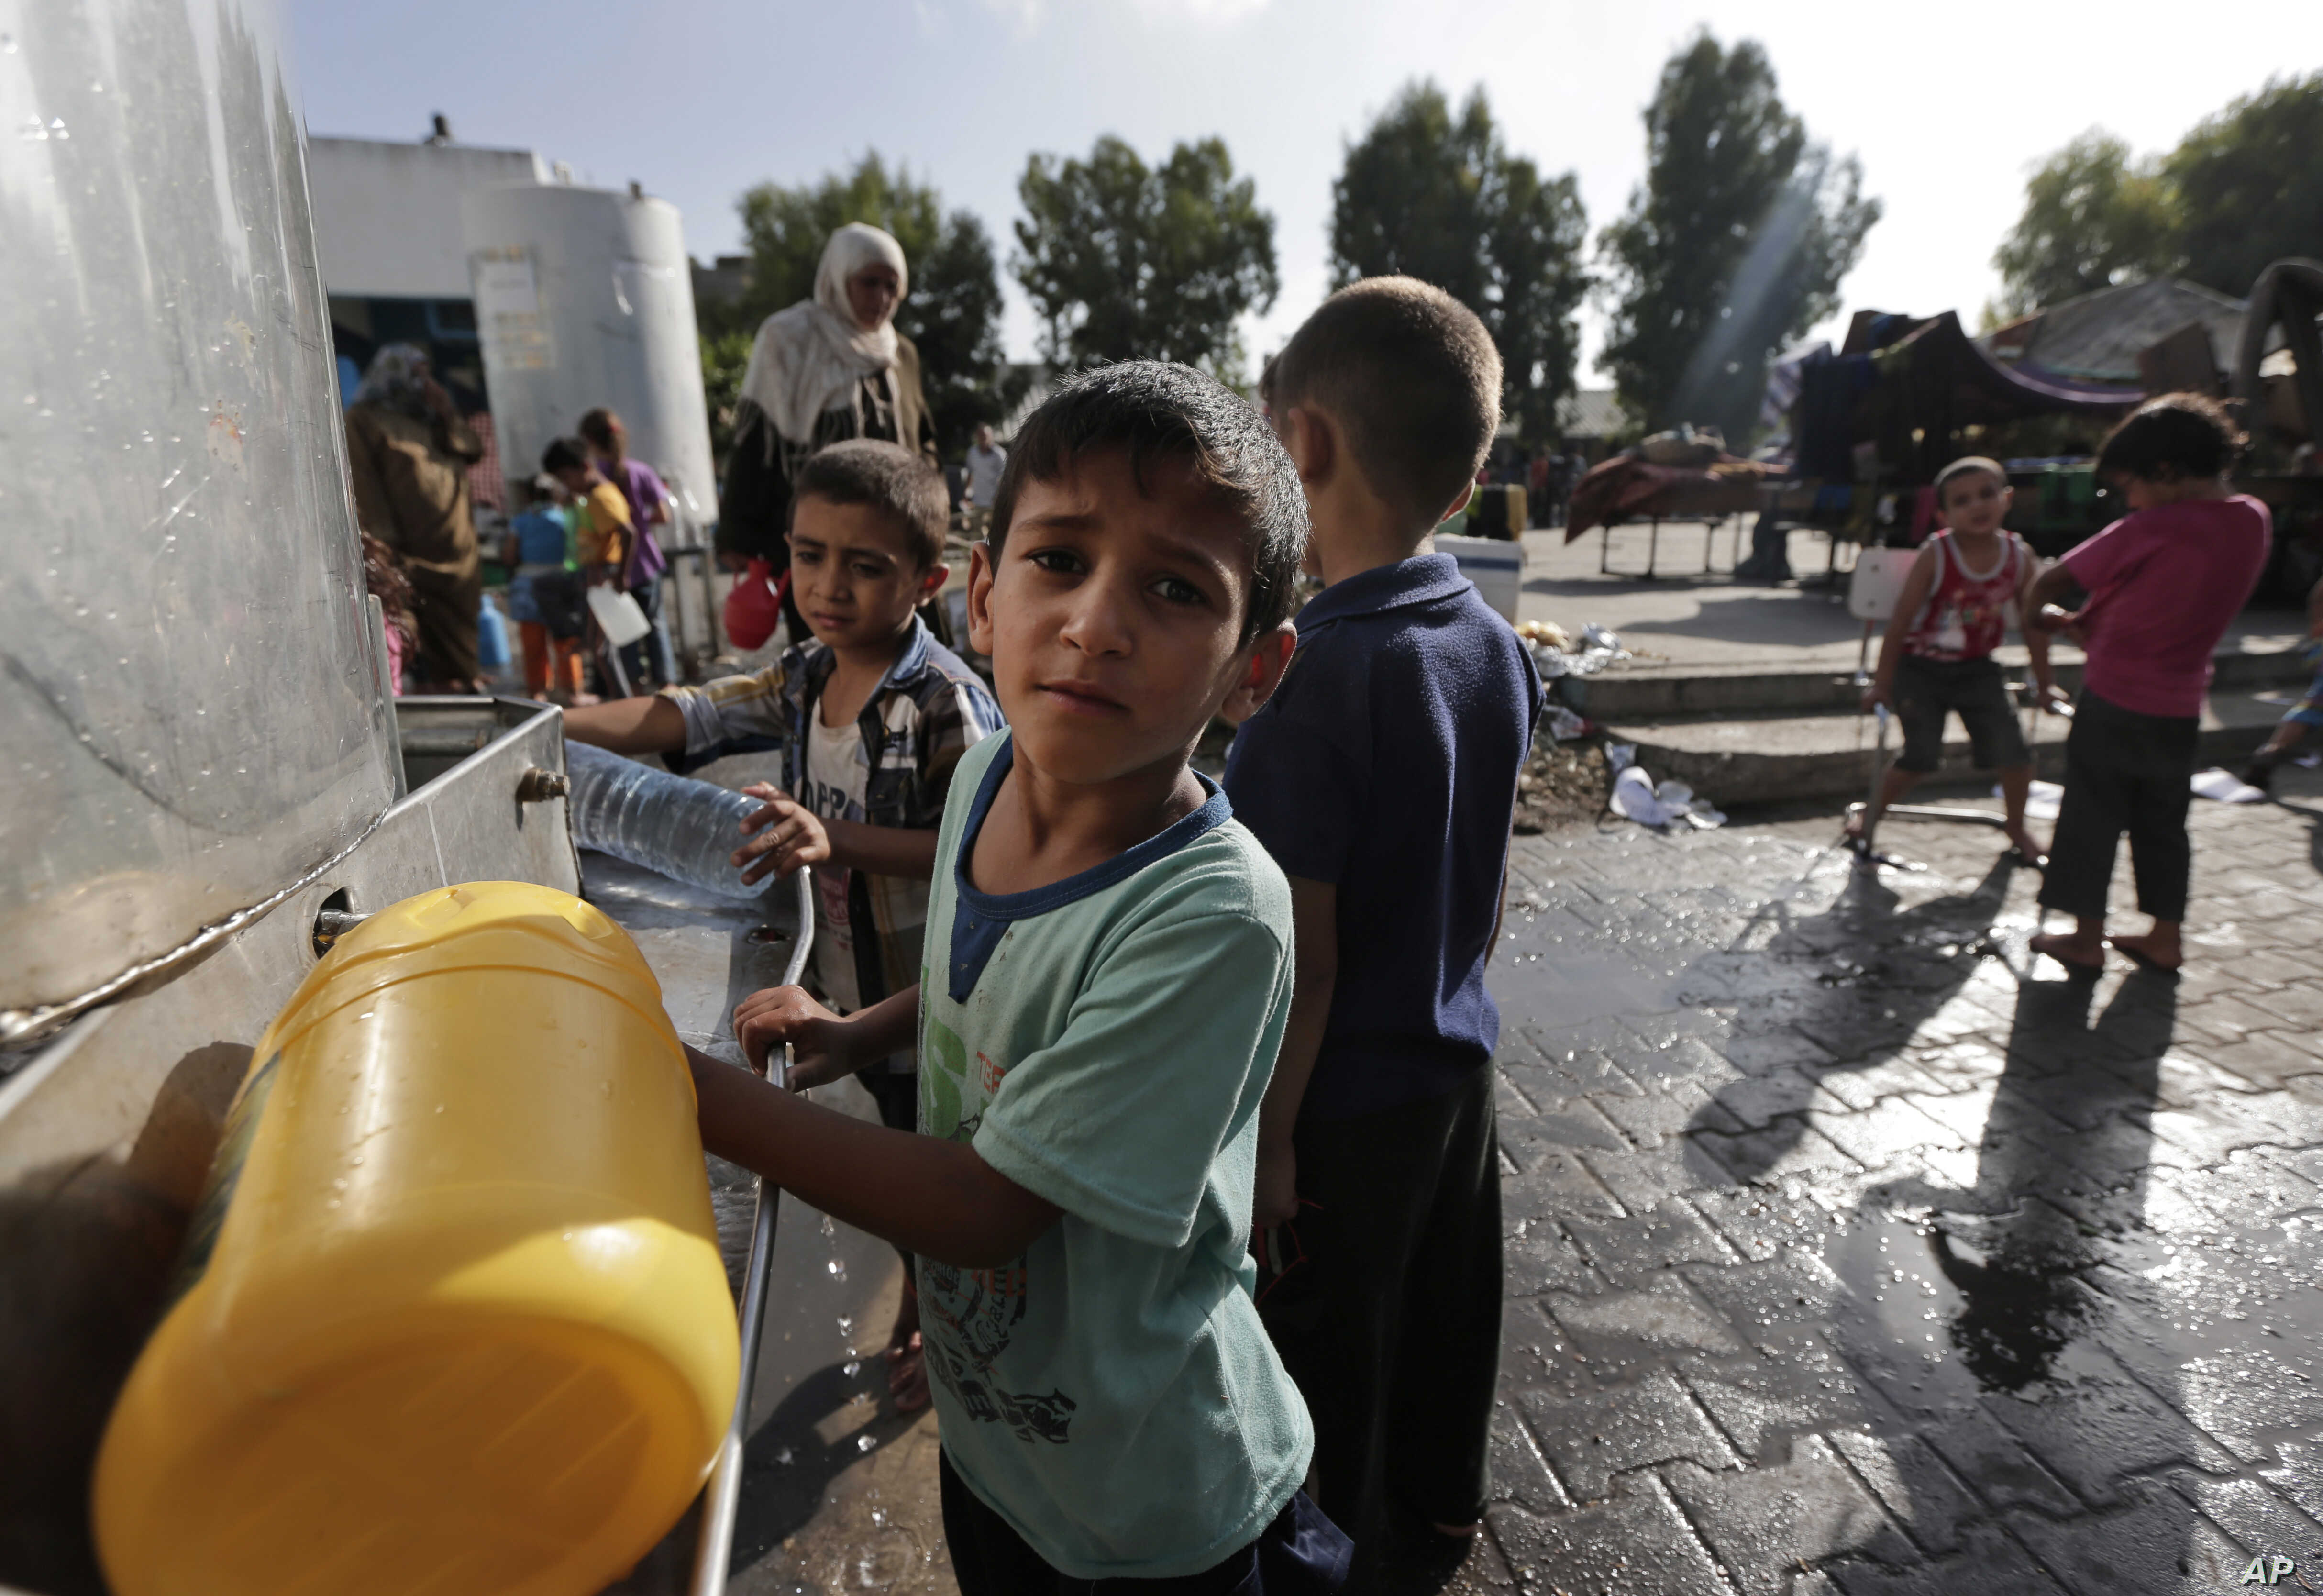 Displaced Palestinian children collect water at the Abu Hussein U.N. school in Jebaliya refugee camp, northern Gaza Strip, on July 30, 2014. It had been hit by artillery shells earlier in the day.